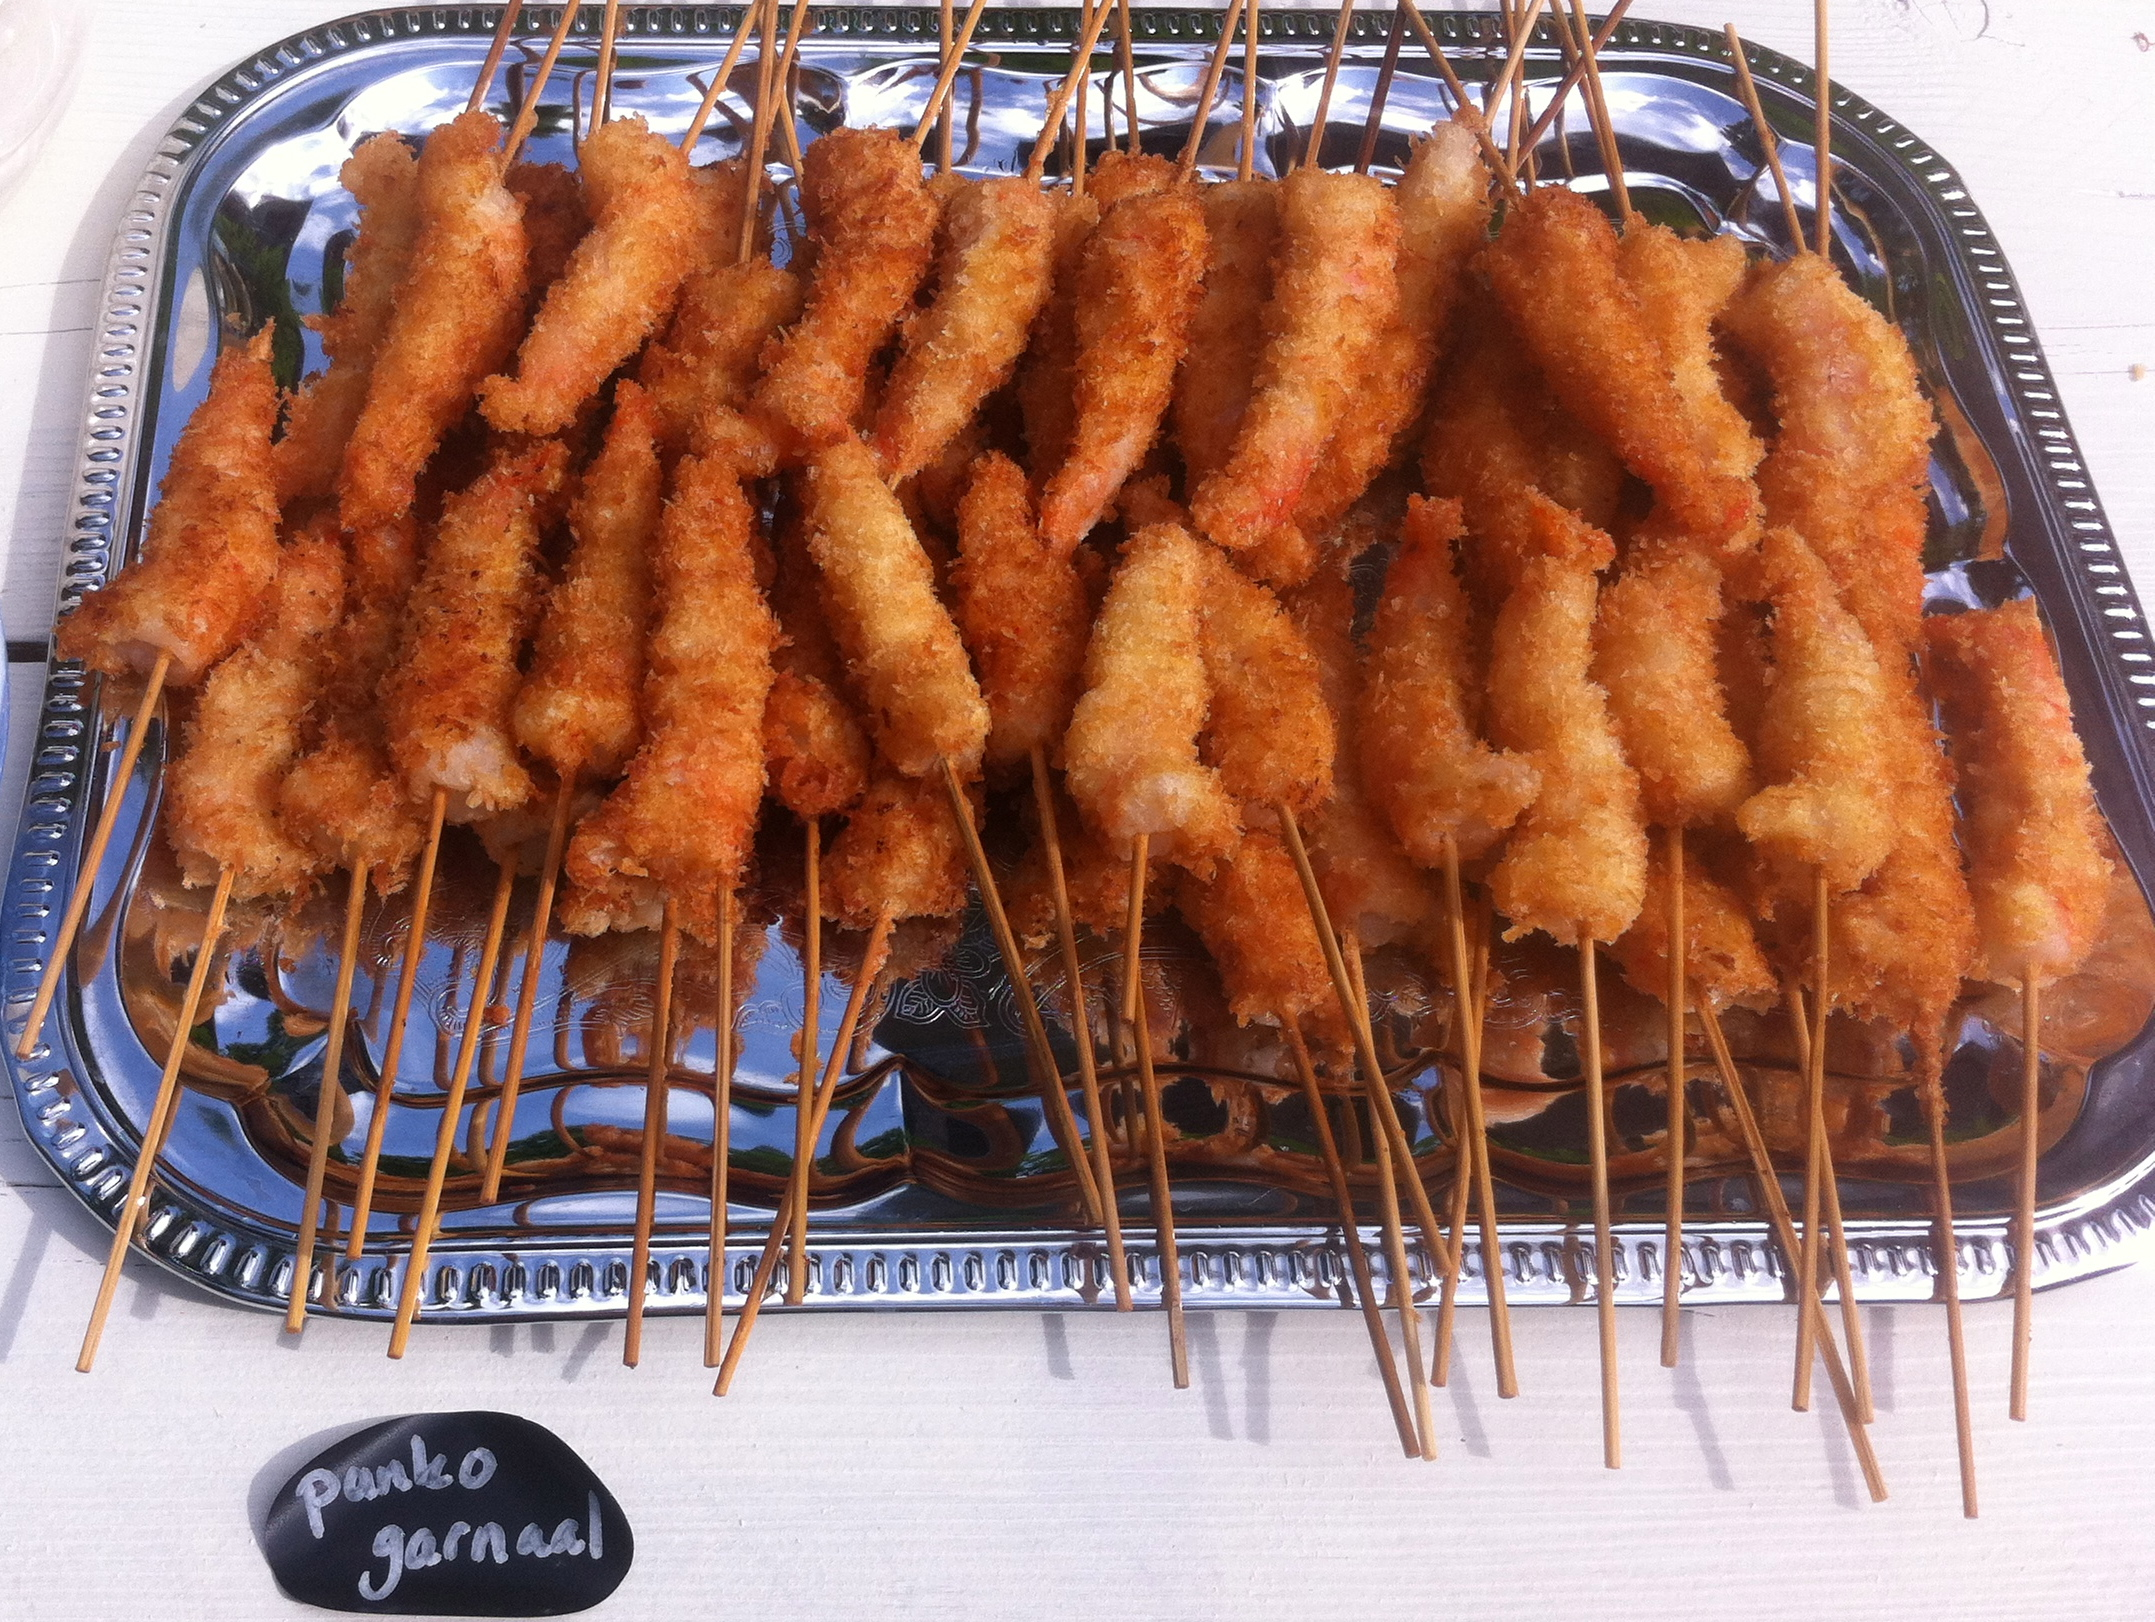 Panko shrimp | more recepies at www.notafraidofbutter.nl